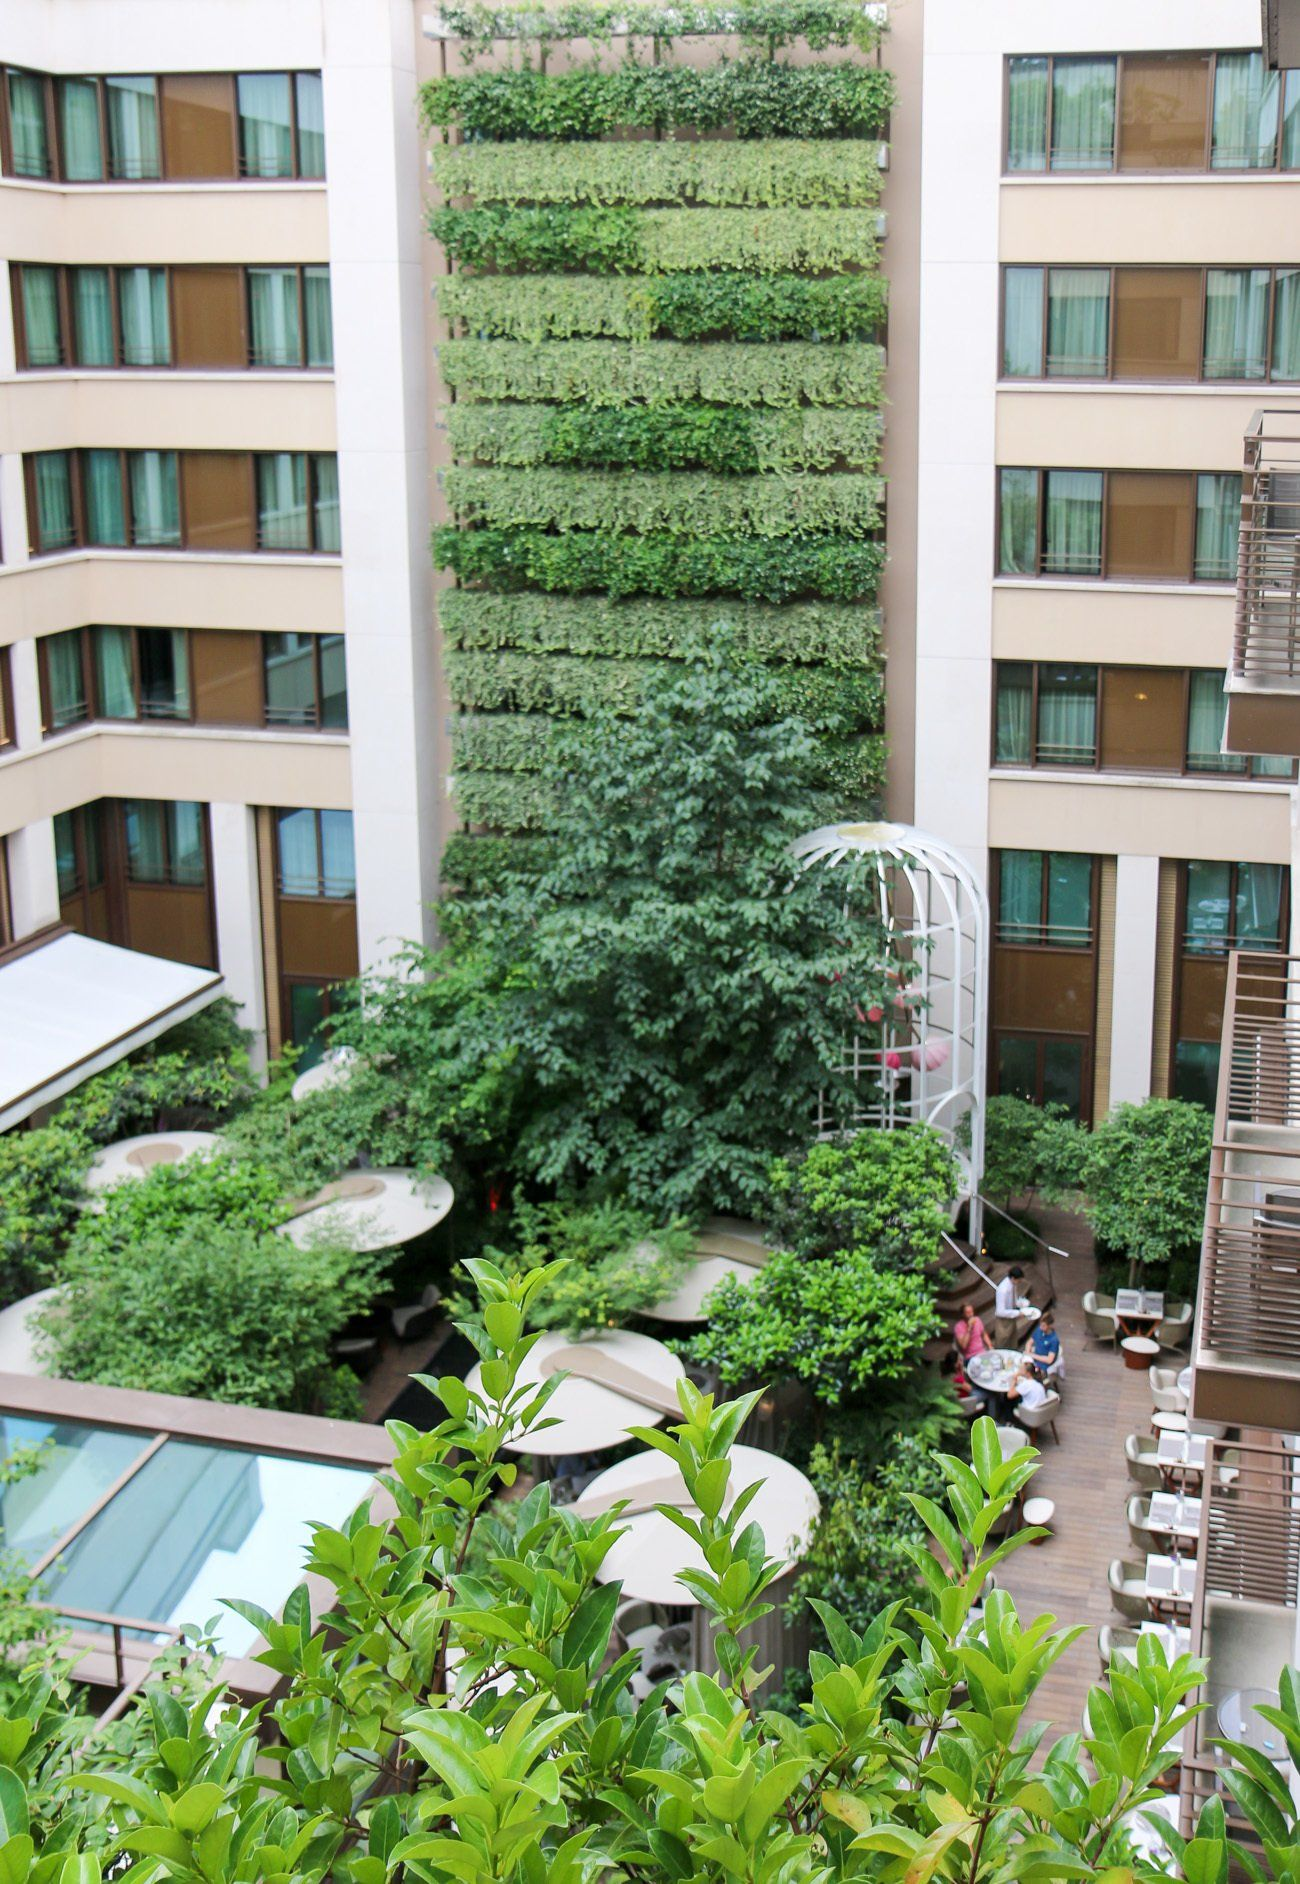 A view of the garden oasis at the Mandarin Oriental hotel in Paris